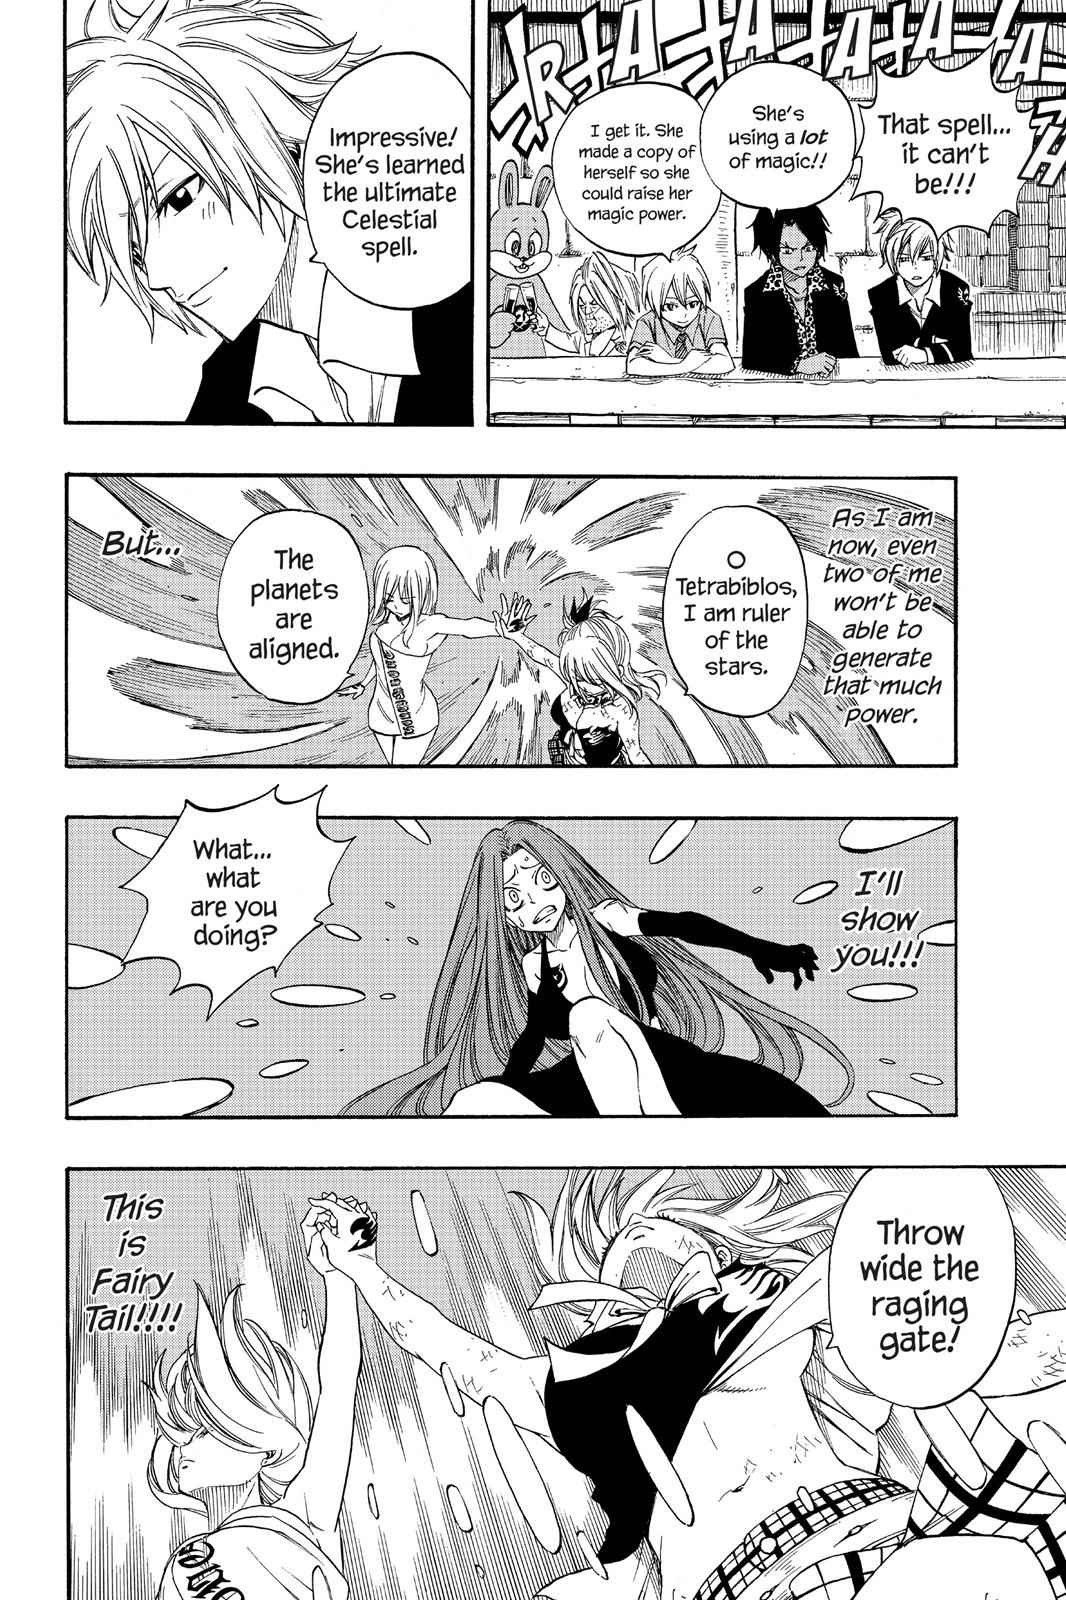 Fairy Tail Chapter 272 Page 12